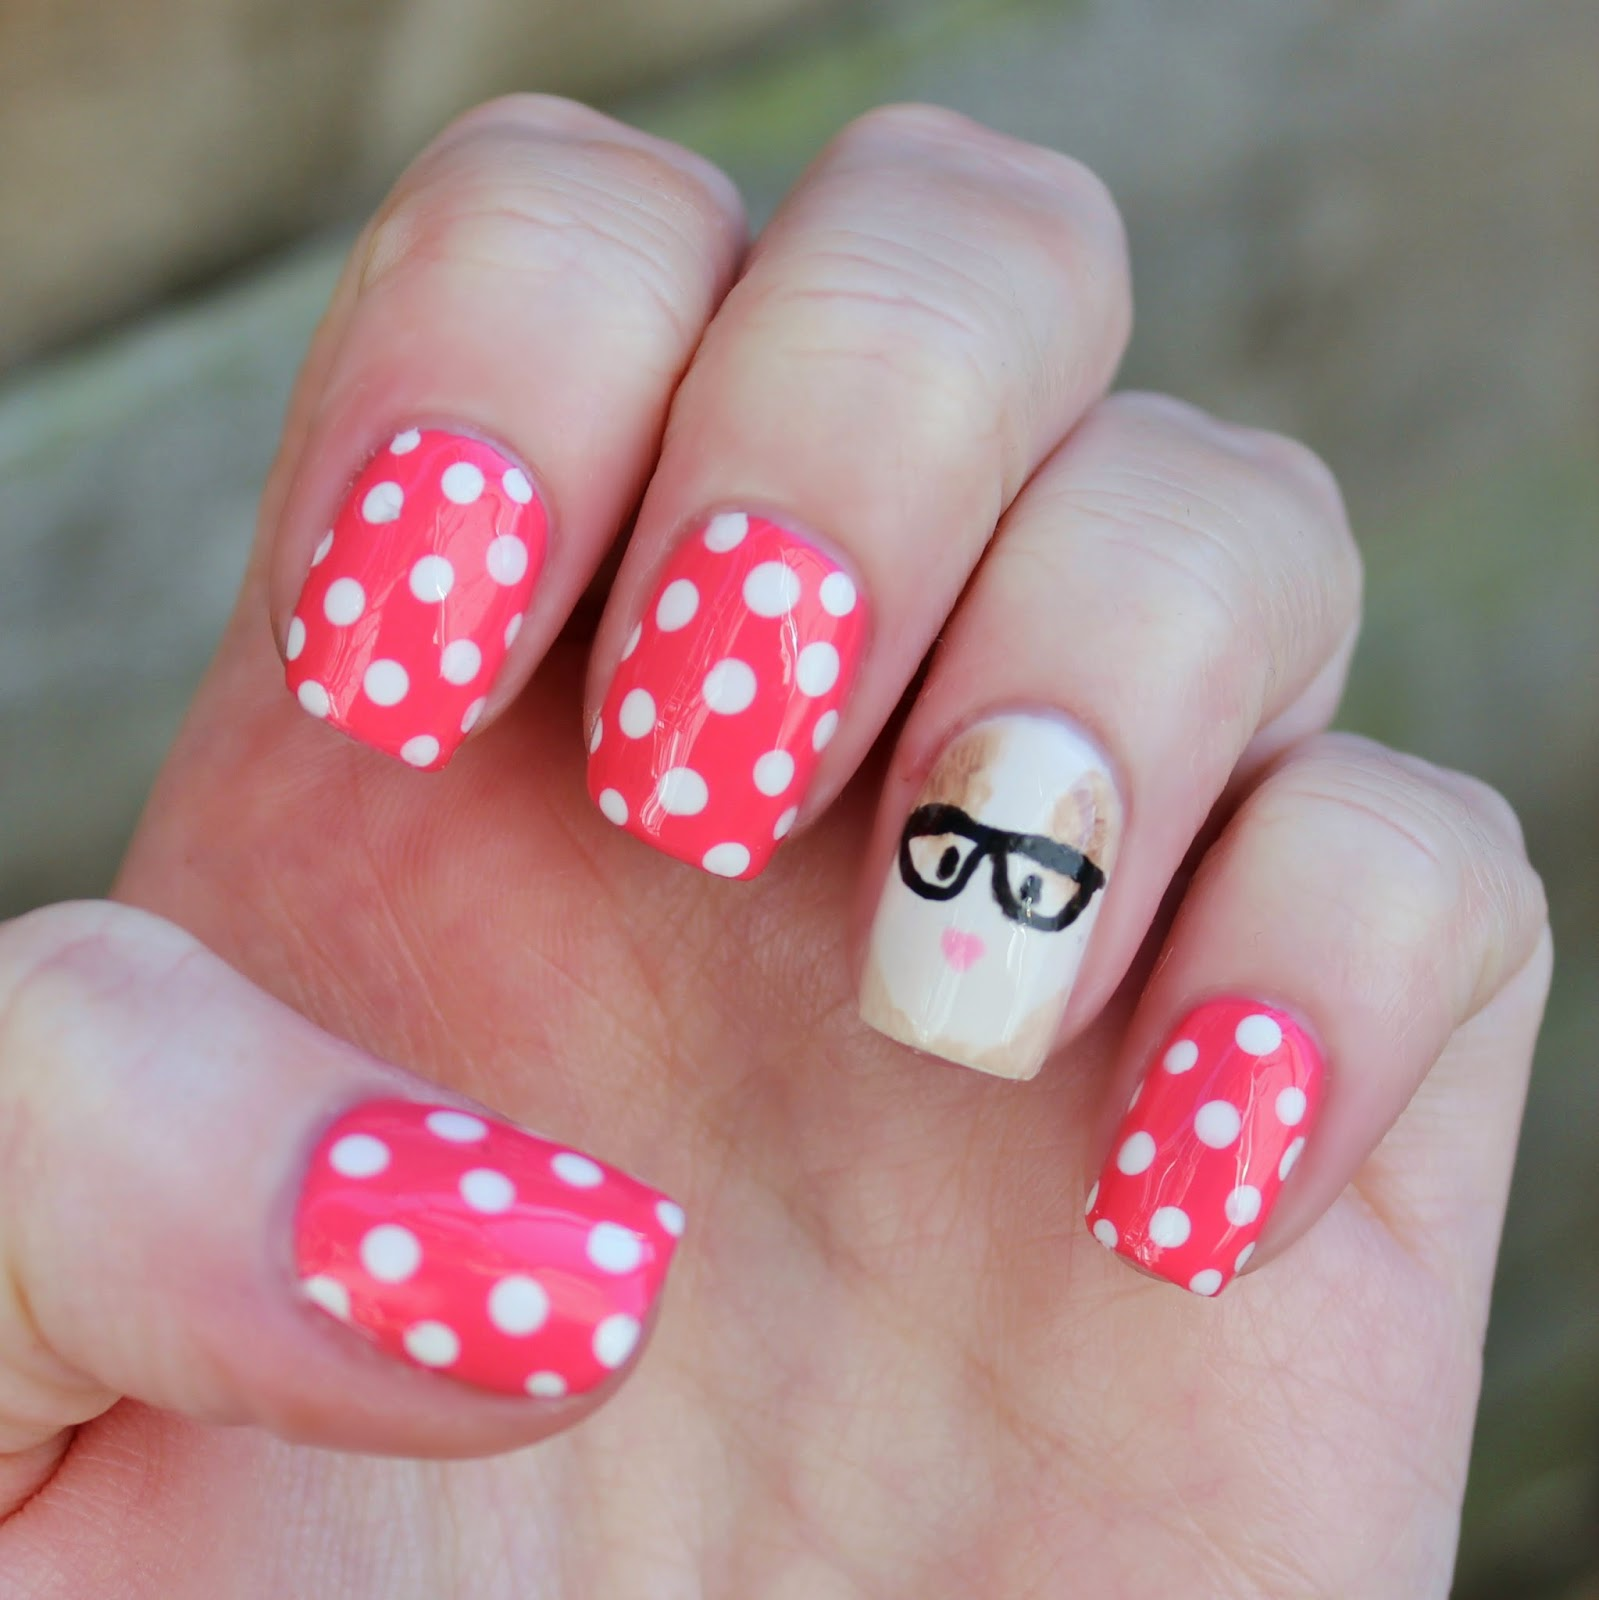 Zoella Beauty Nails